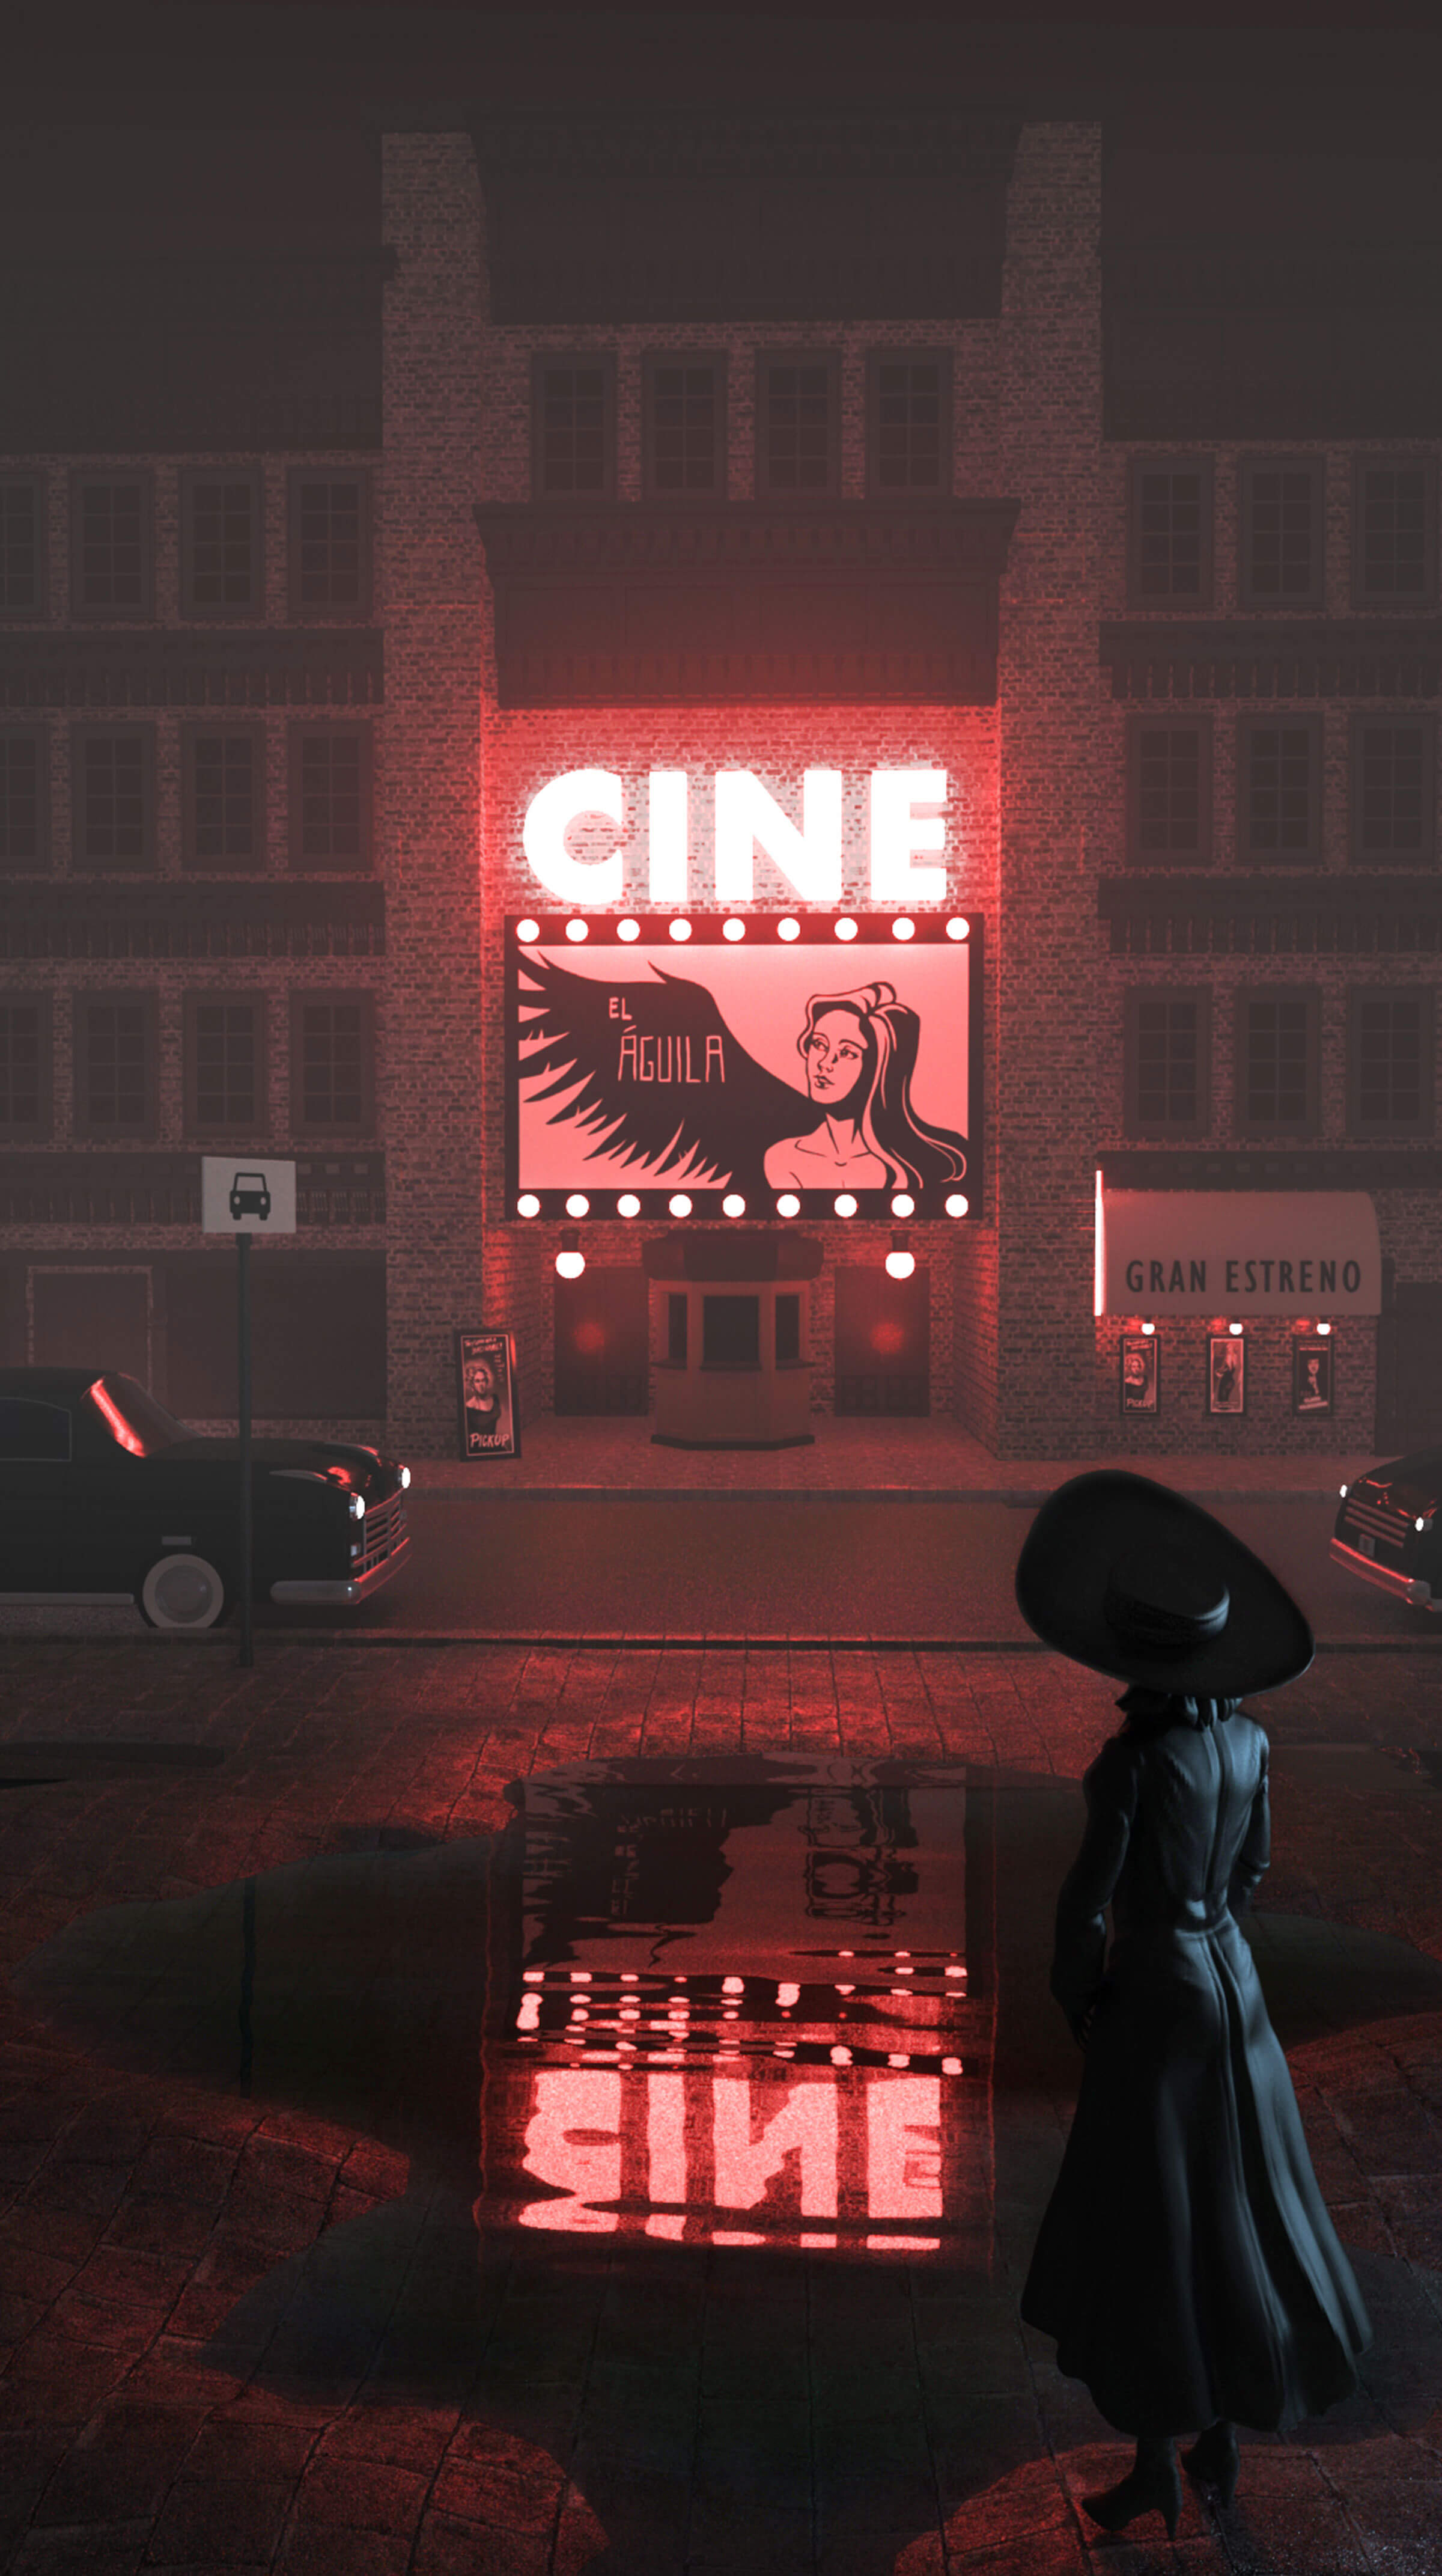 A woman in a black hat and coat is seen from behind staring at the red-lit marquee of a movie theater across the street.